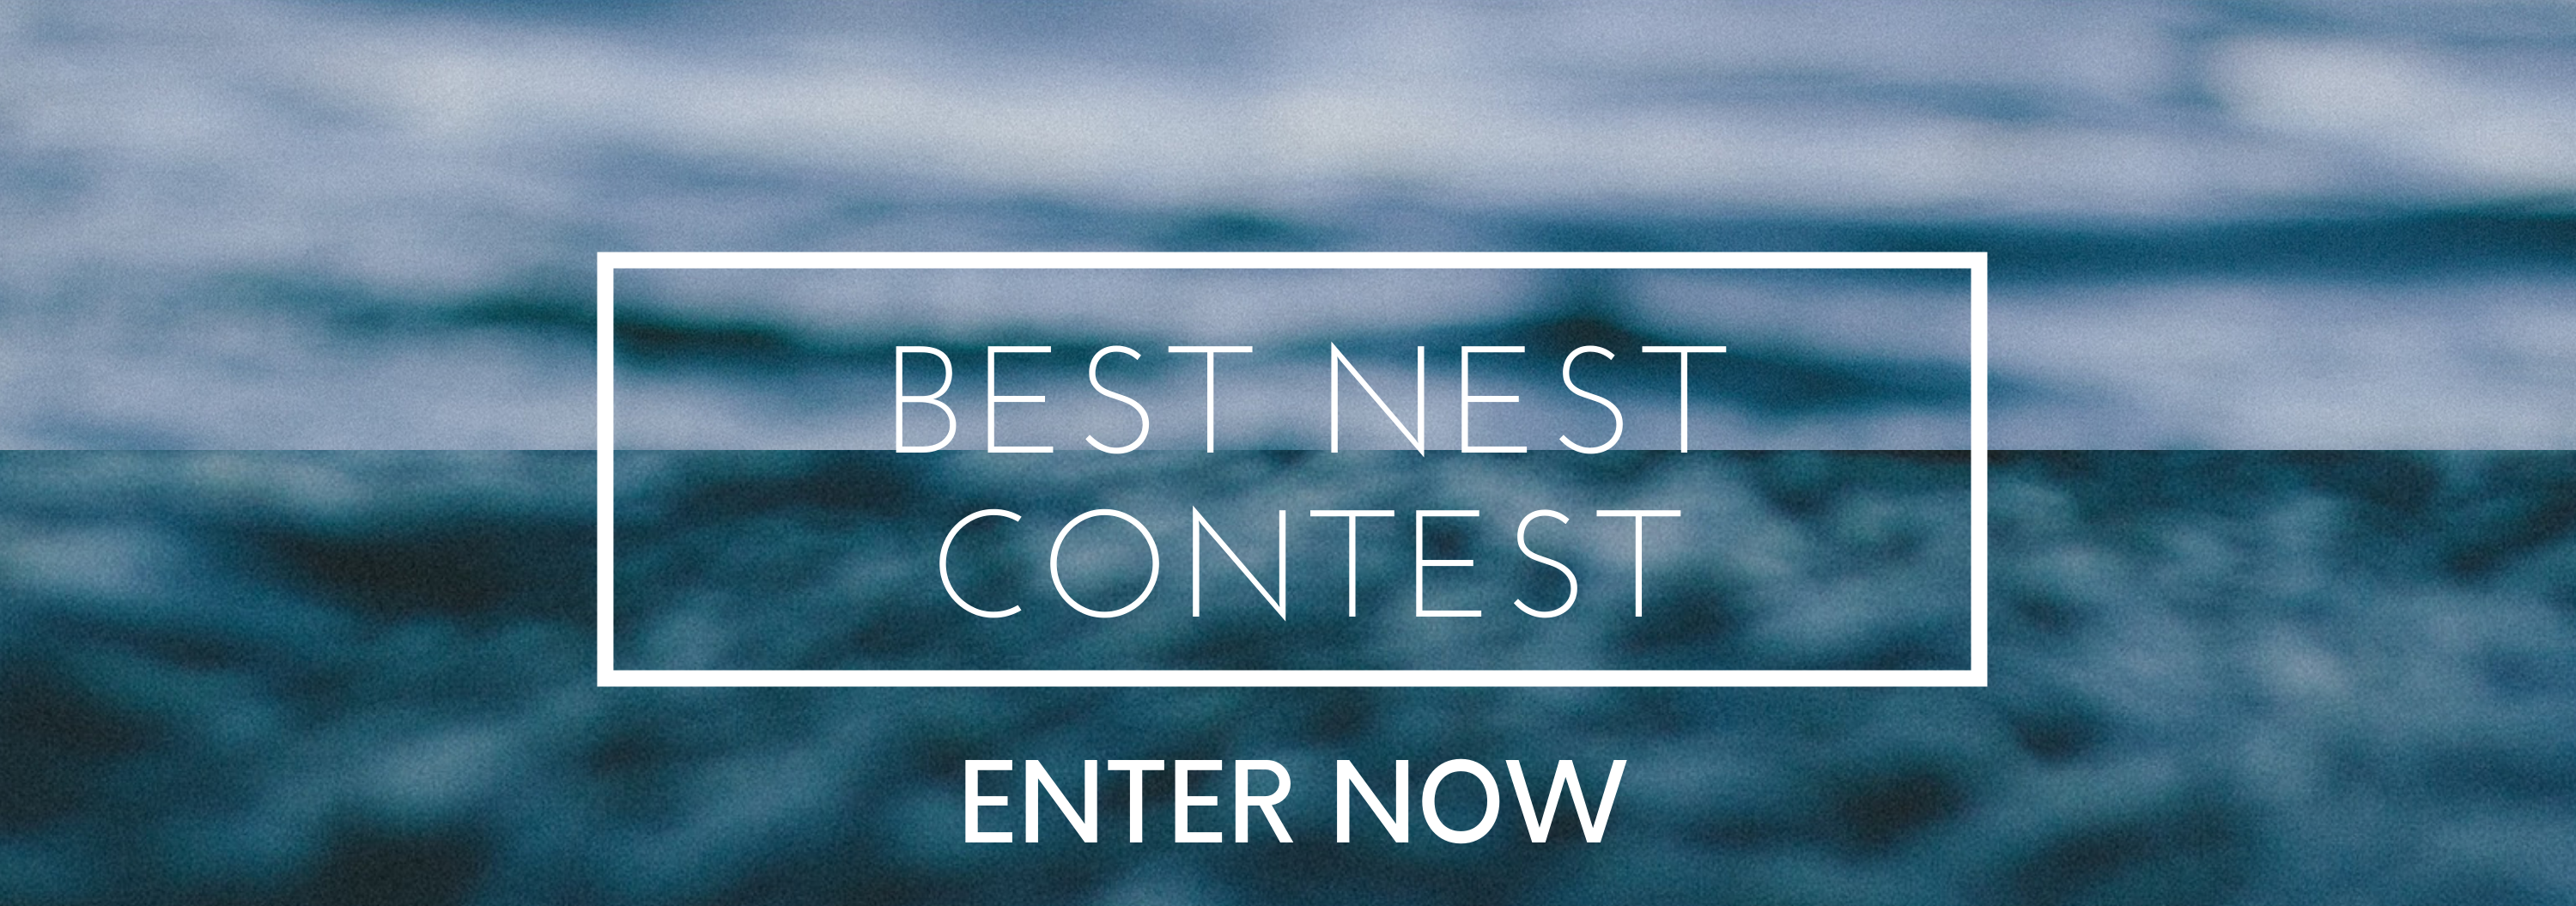 Bet Nest Contest